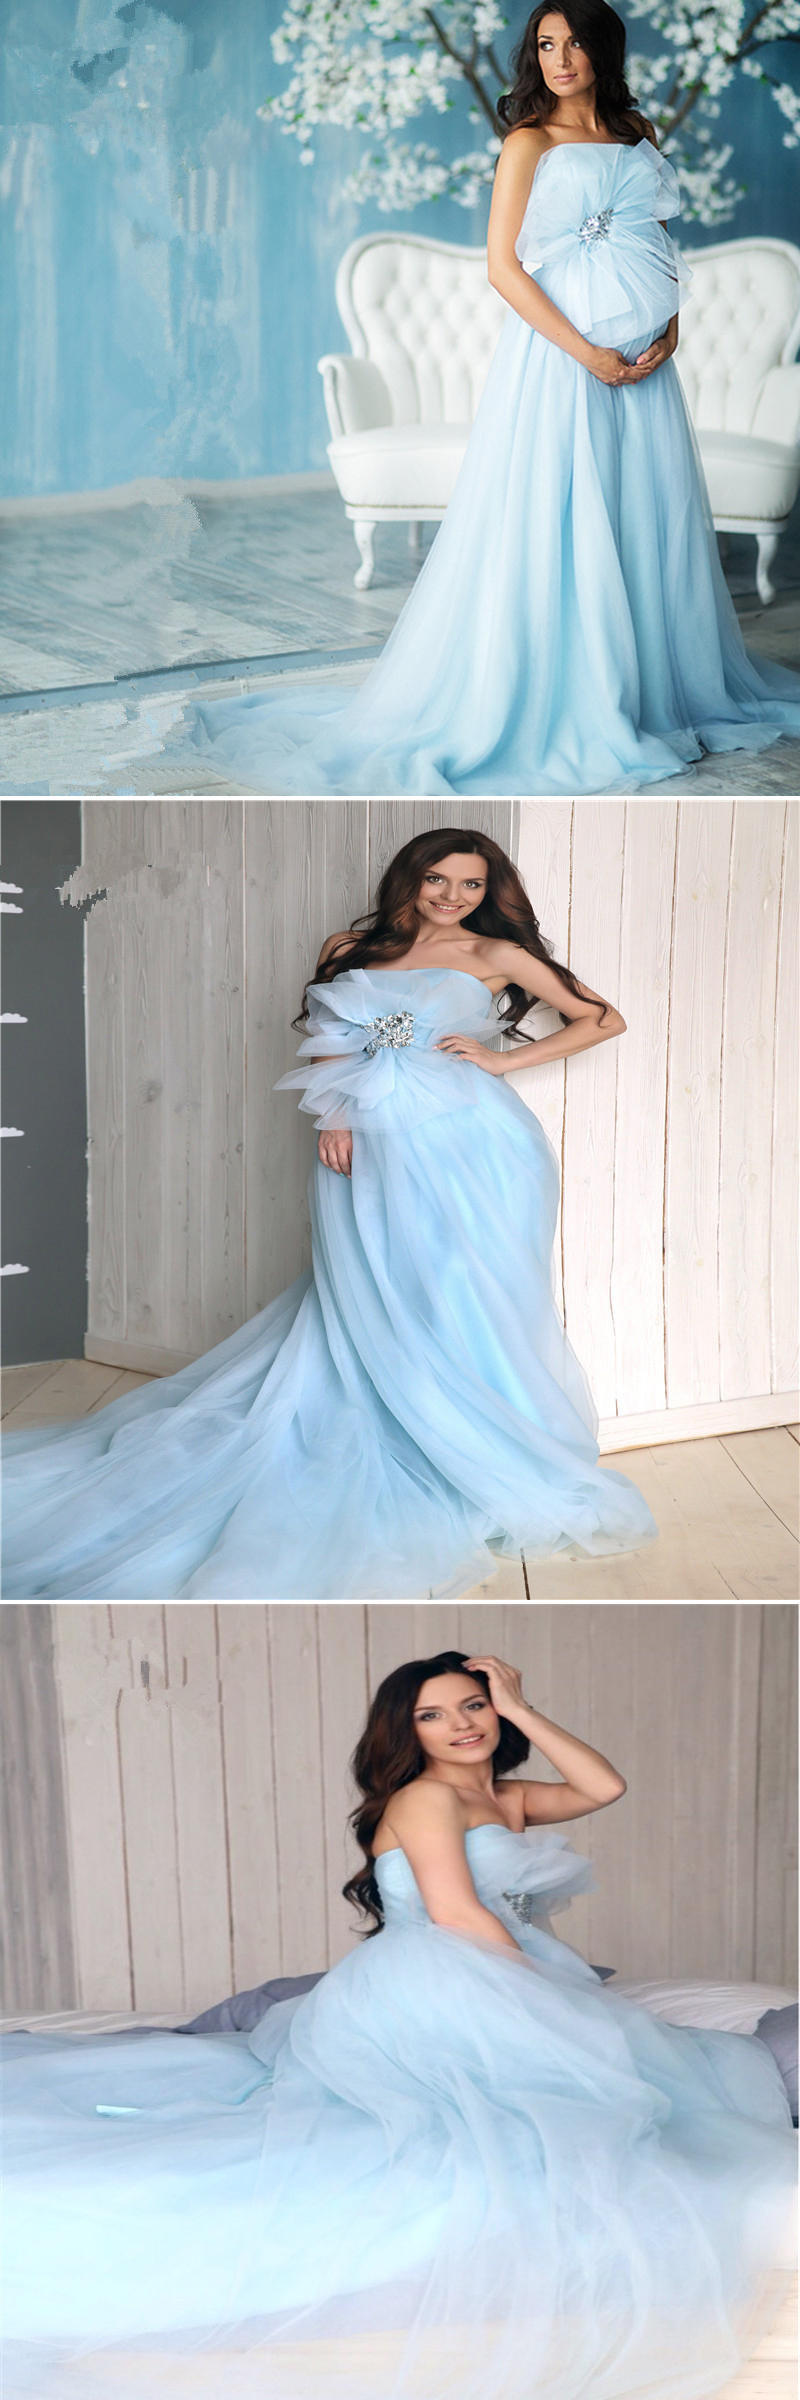 15+ Pregnant / Maternity Wedding Dress Ideas | Pregnancy wedding ...